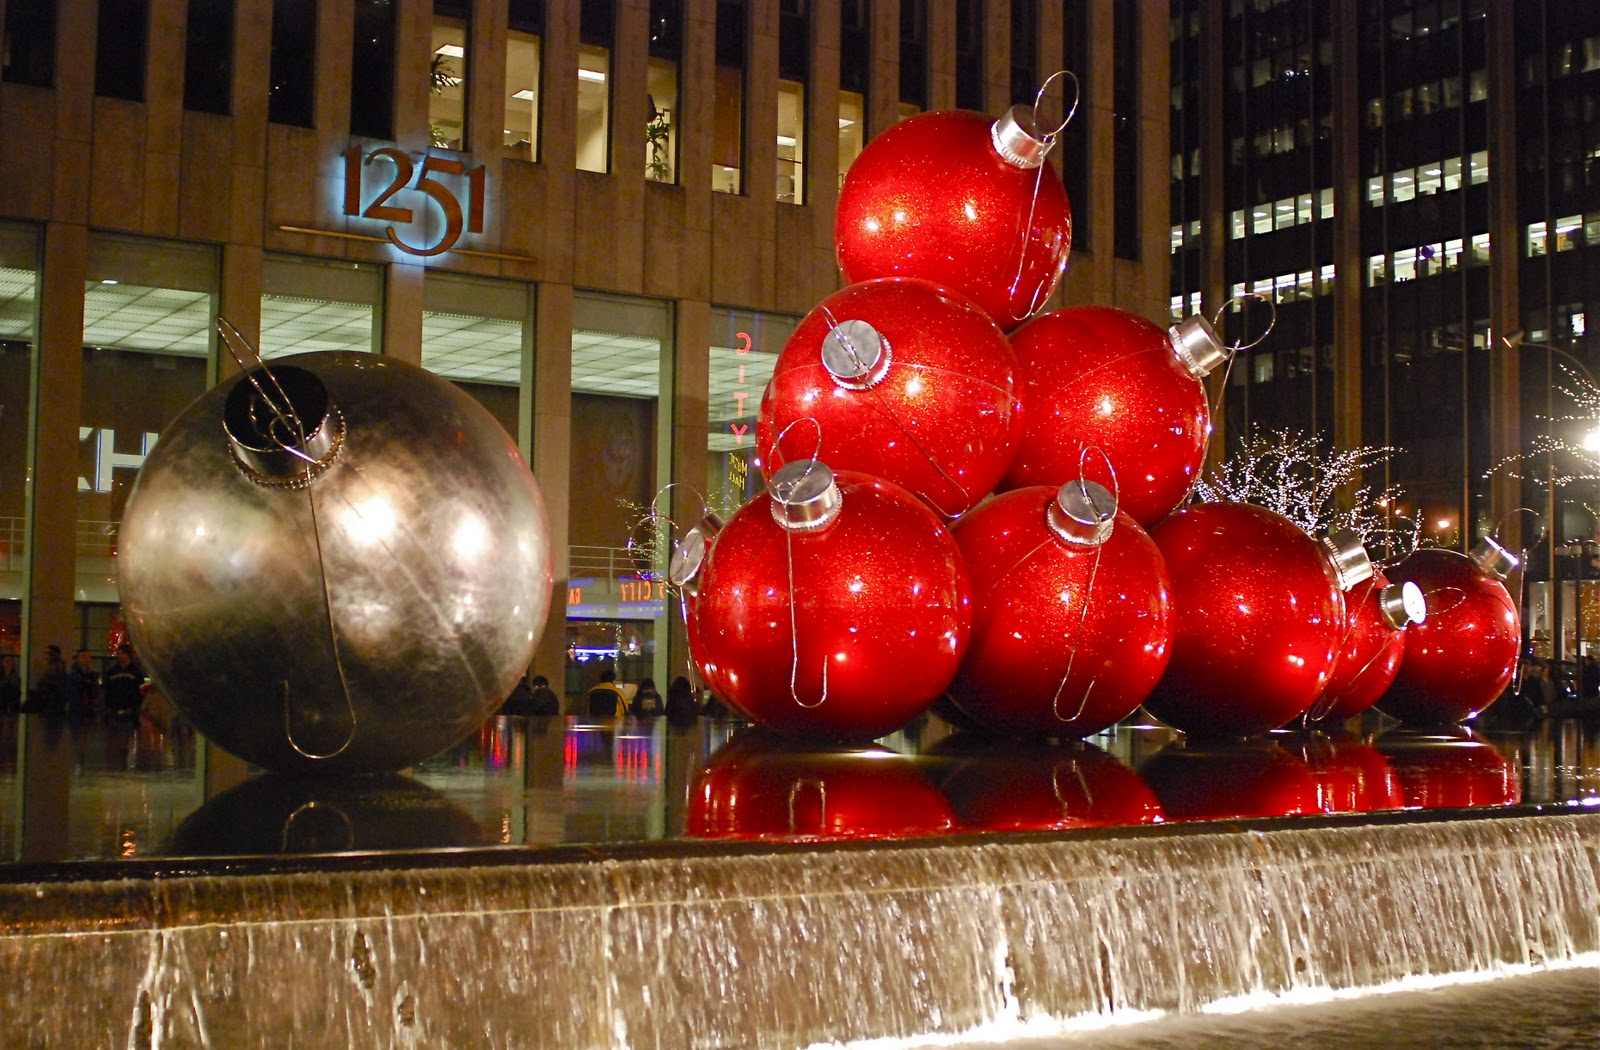 giant christmas ornaments at 1251 sixth avenue - New York Christmas Decorations